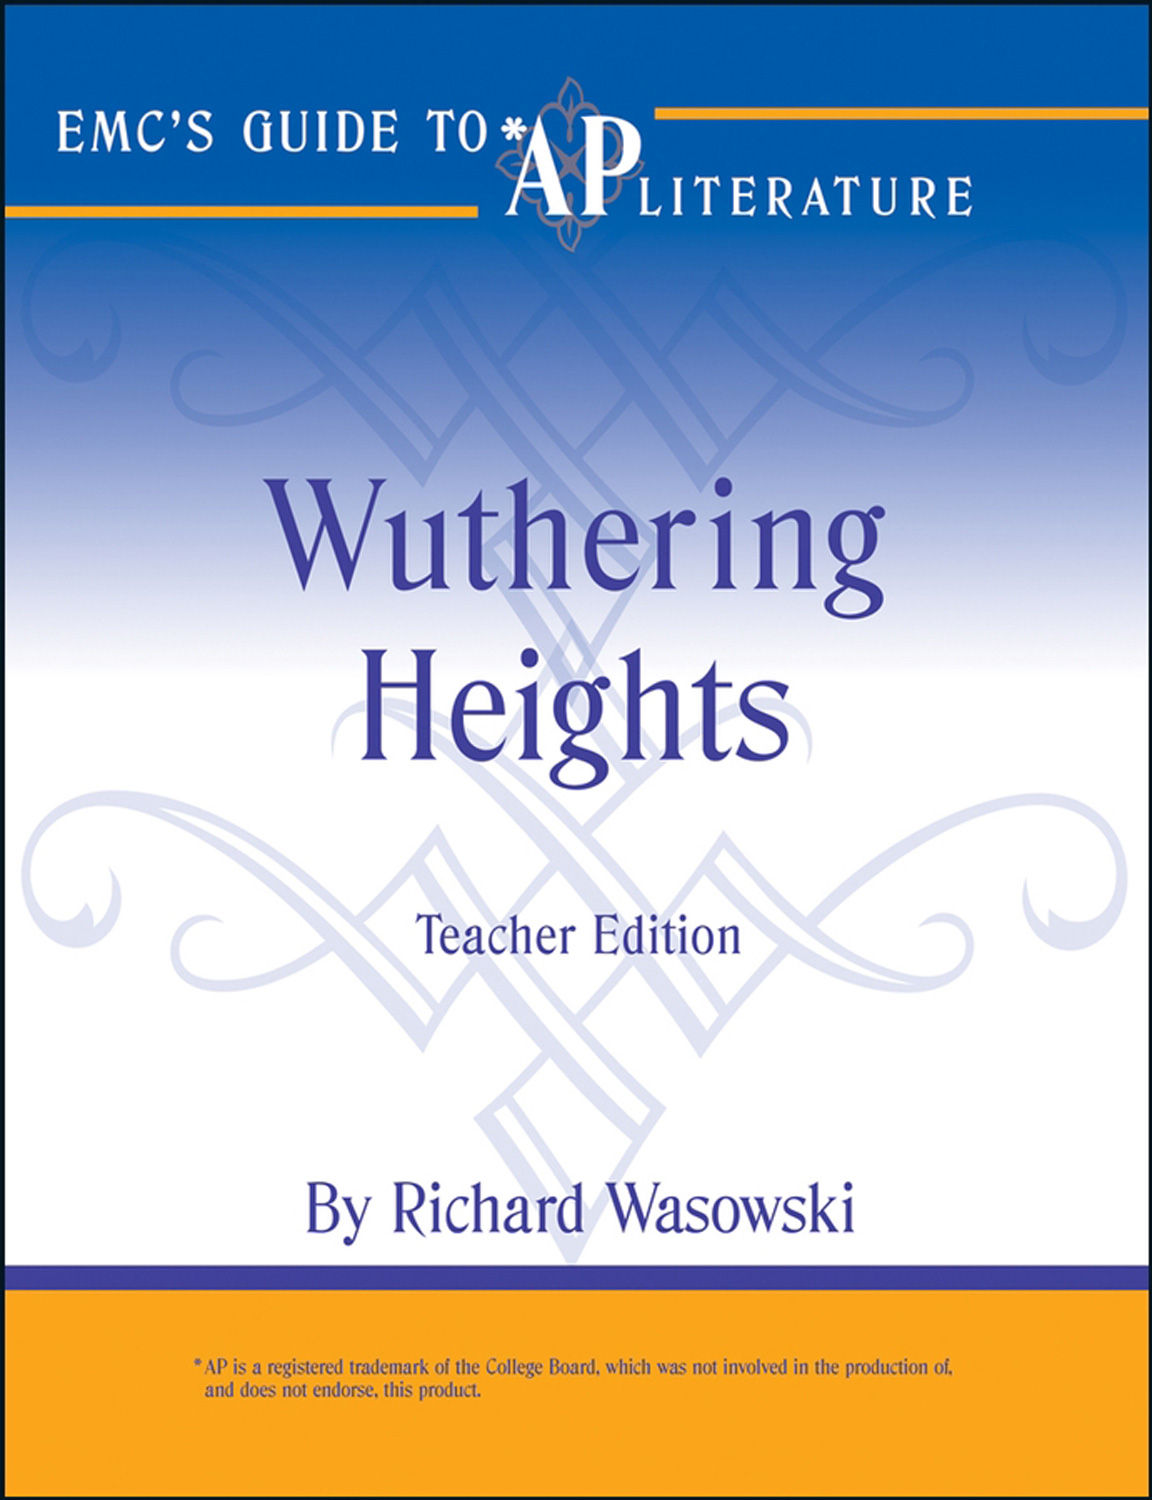 literary research paper wuthering heights Discover librarian-selected research resources on wuthering heights from the questia on small pieces of paper  success from the family's literary.